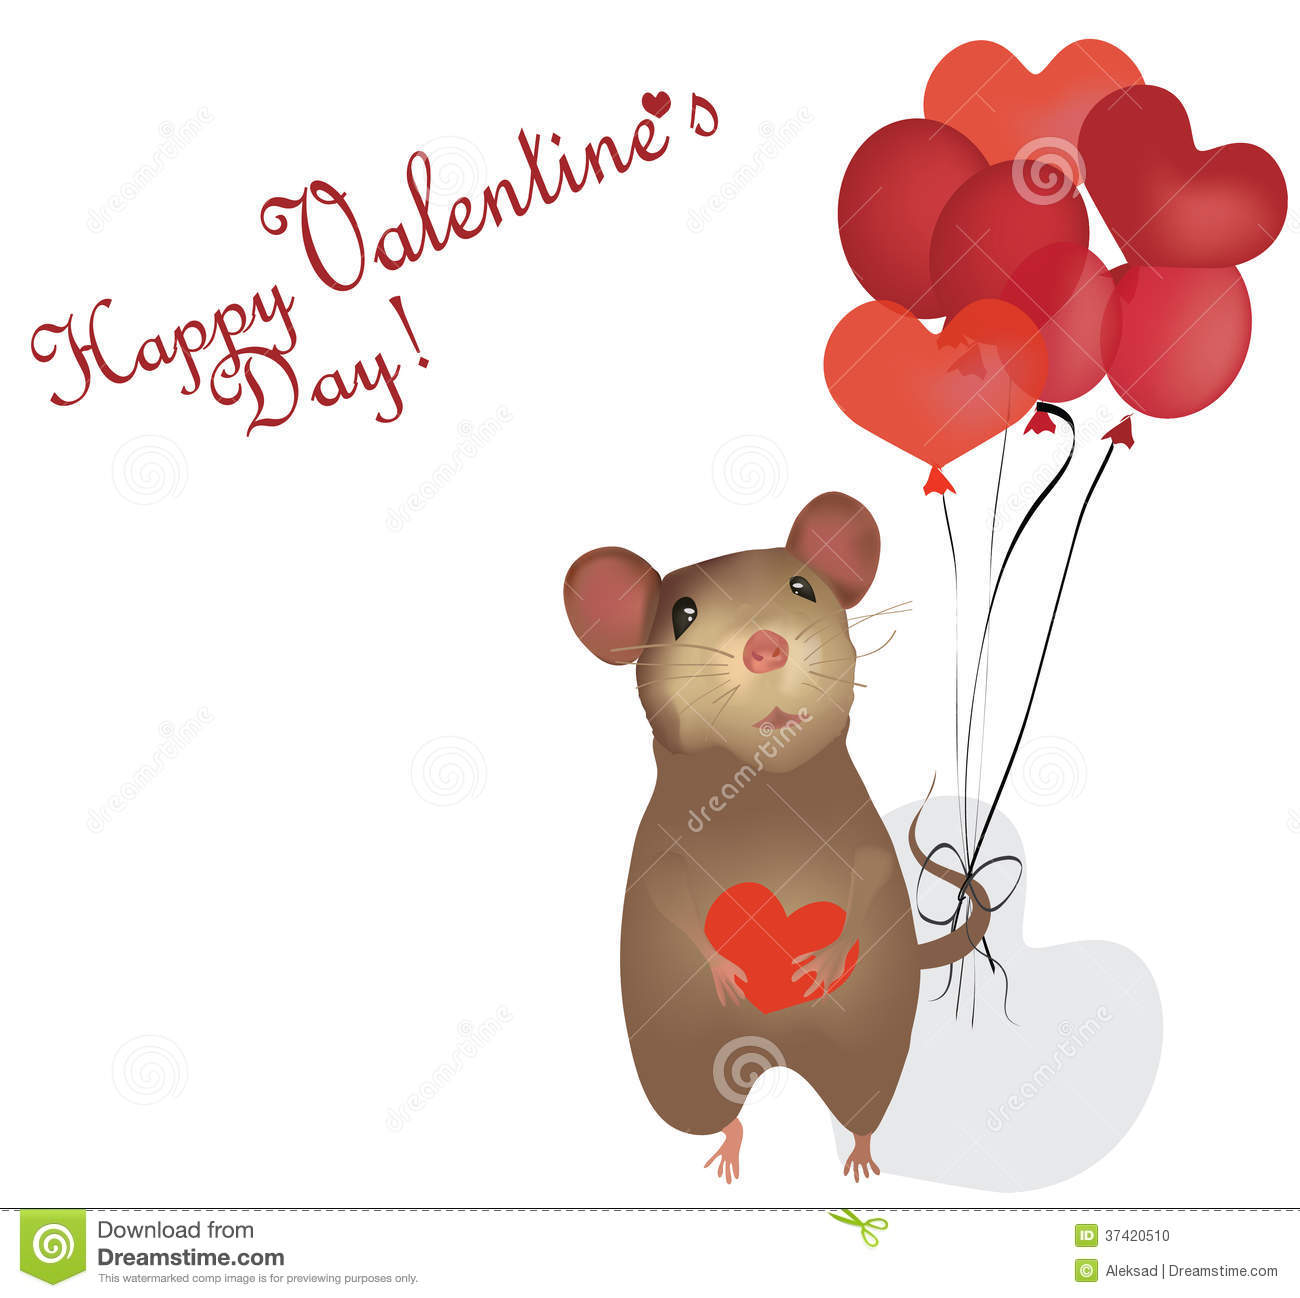 HAPPY VALENTINES DAY MOUSE EPUB DOWNLOAD